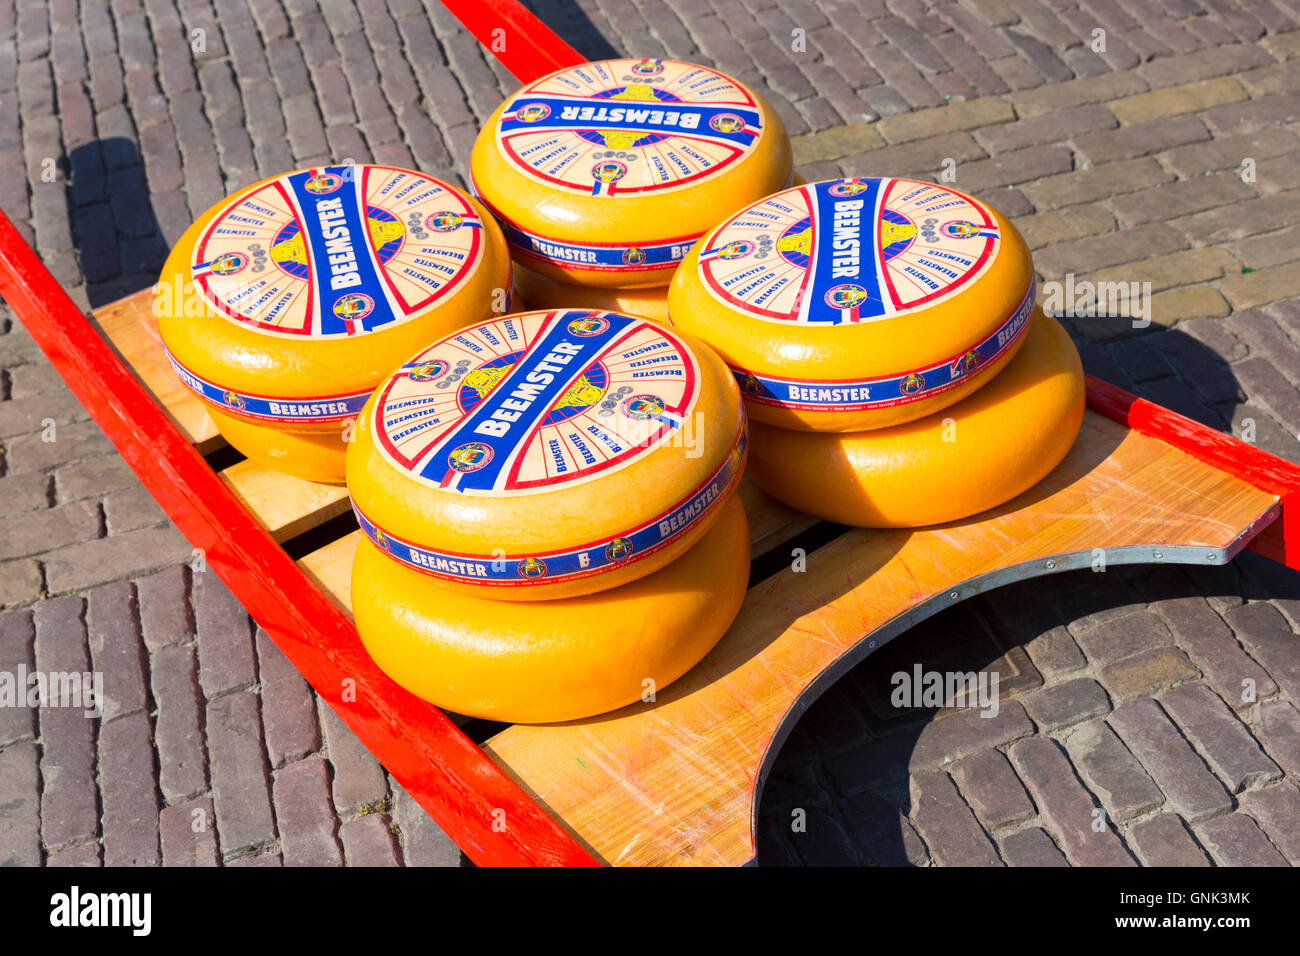 Display of wheels of Beemster aged gourmet Gouda cheese at Alkmaar cheese market, The Netherlands - Stock Image